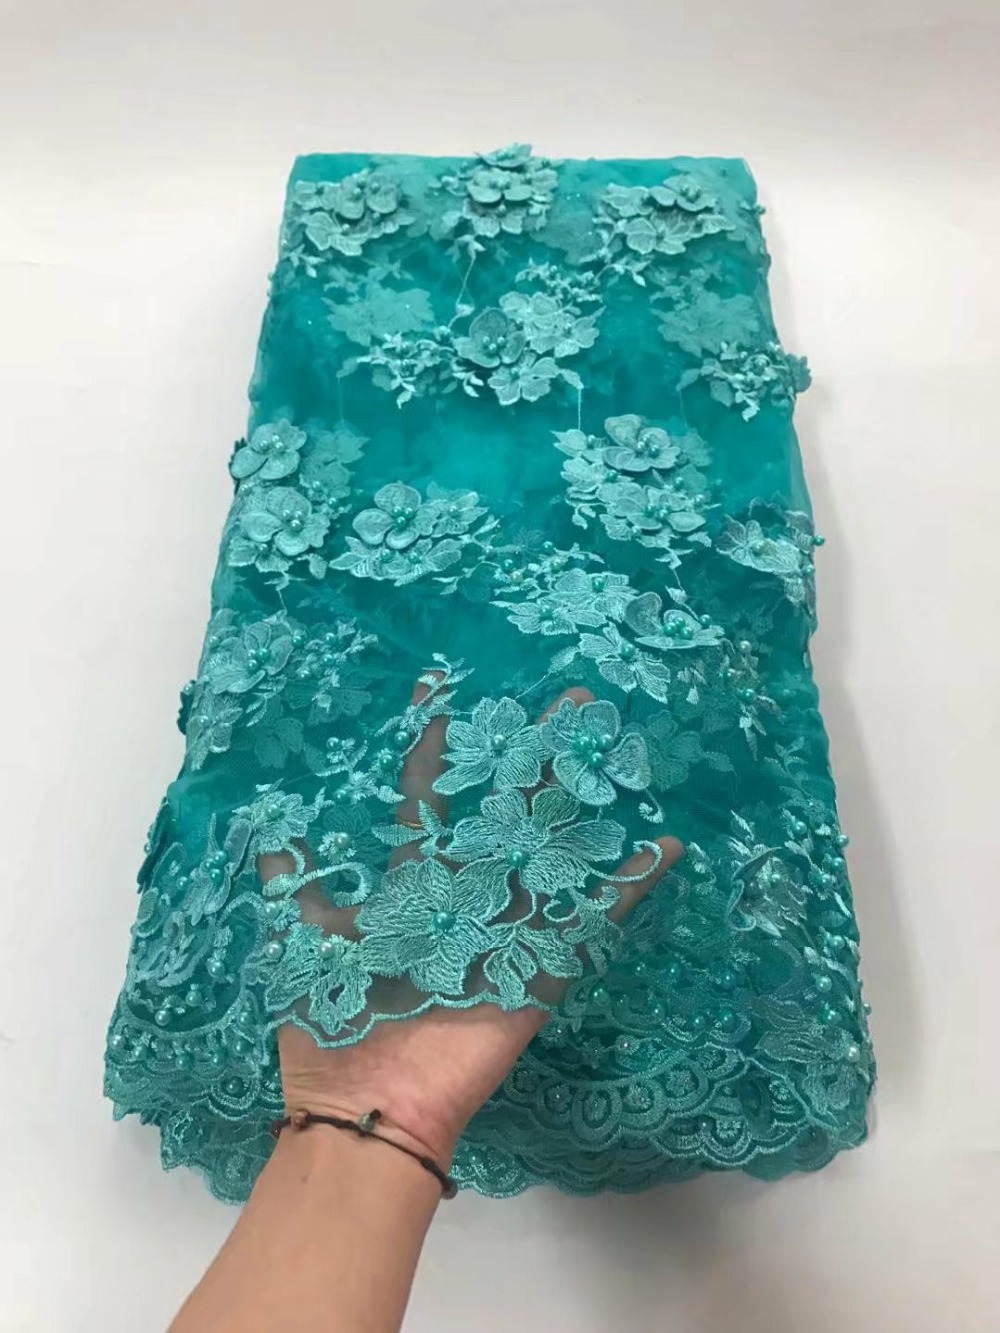 Stoff Spitze Us 119 1 5 Yards Lot Jy 718 1 Beliebte Design Bestickt Franzosisch Spitze Stoff Fur Party Kleid African Tull Stoff Tull Stoff In Lace From Home